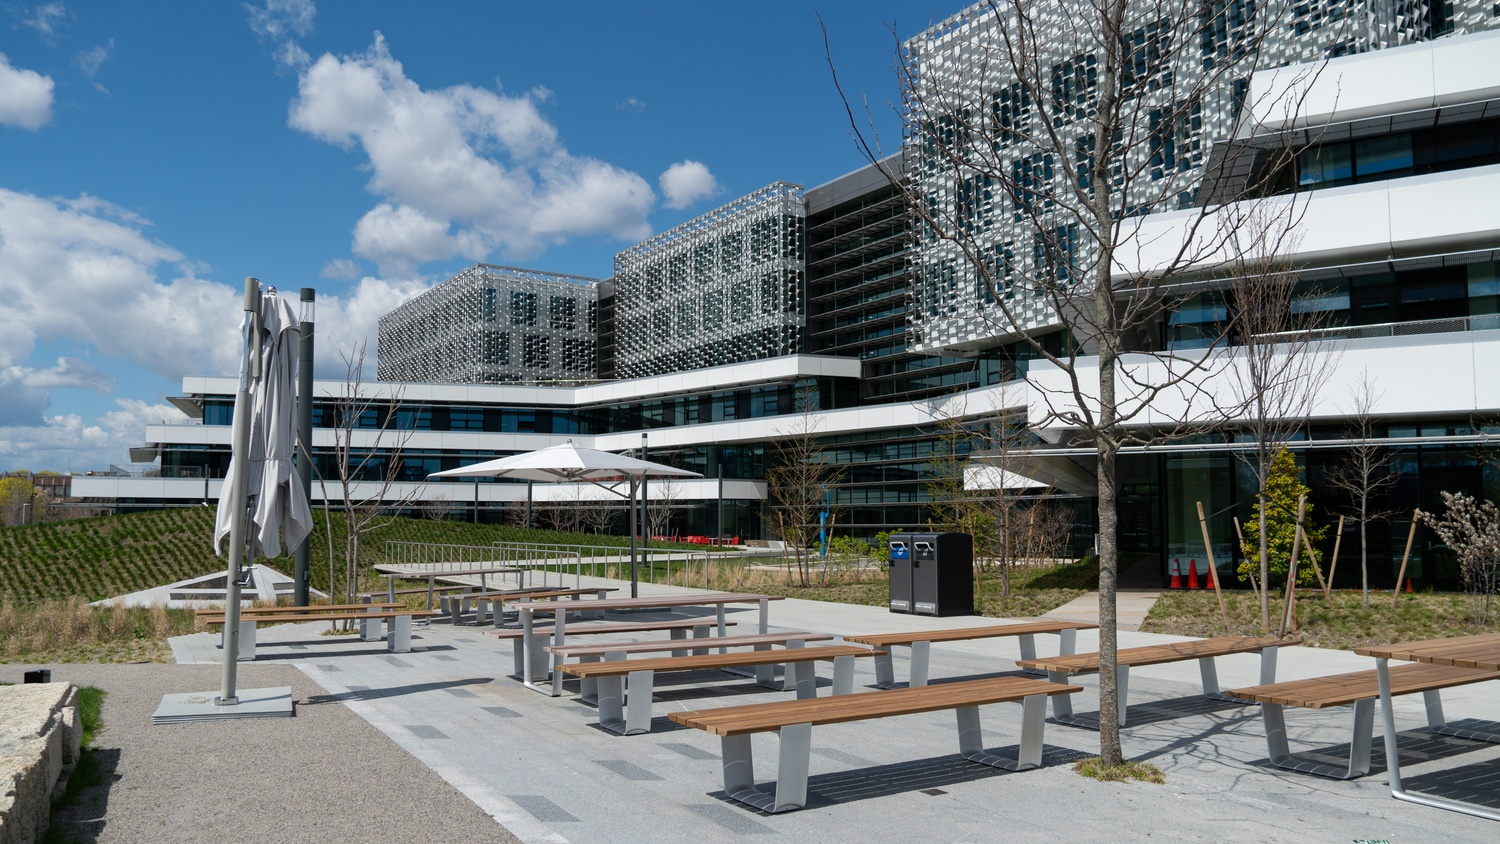 The landscaped Engineering Yard on the south side of the complex has outdoor study space, and can also function as an amphitheater.